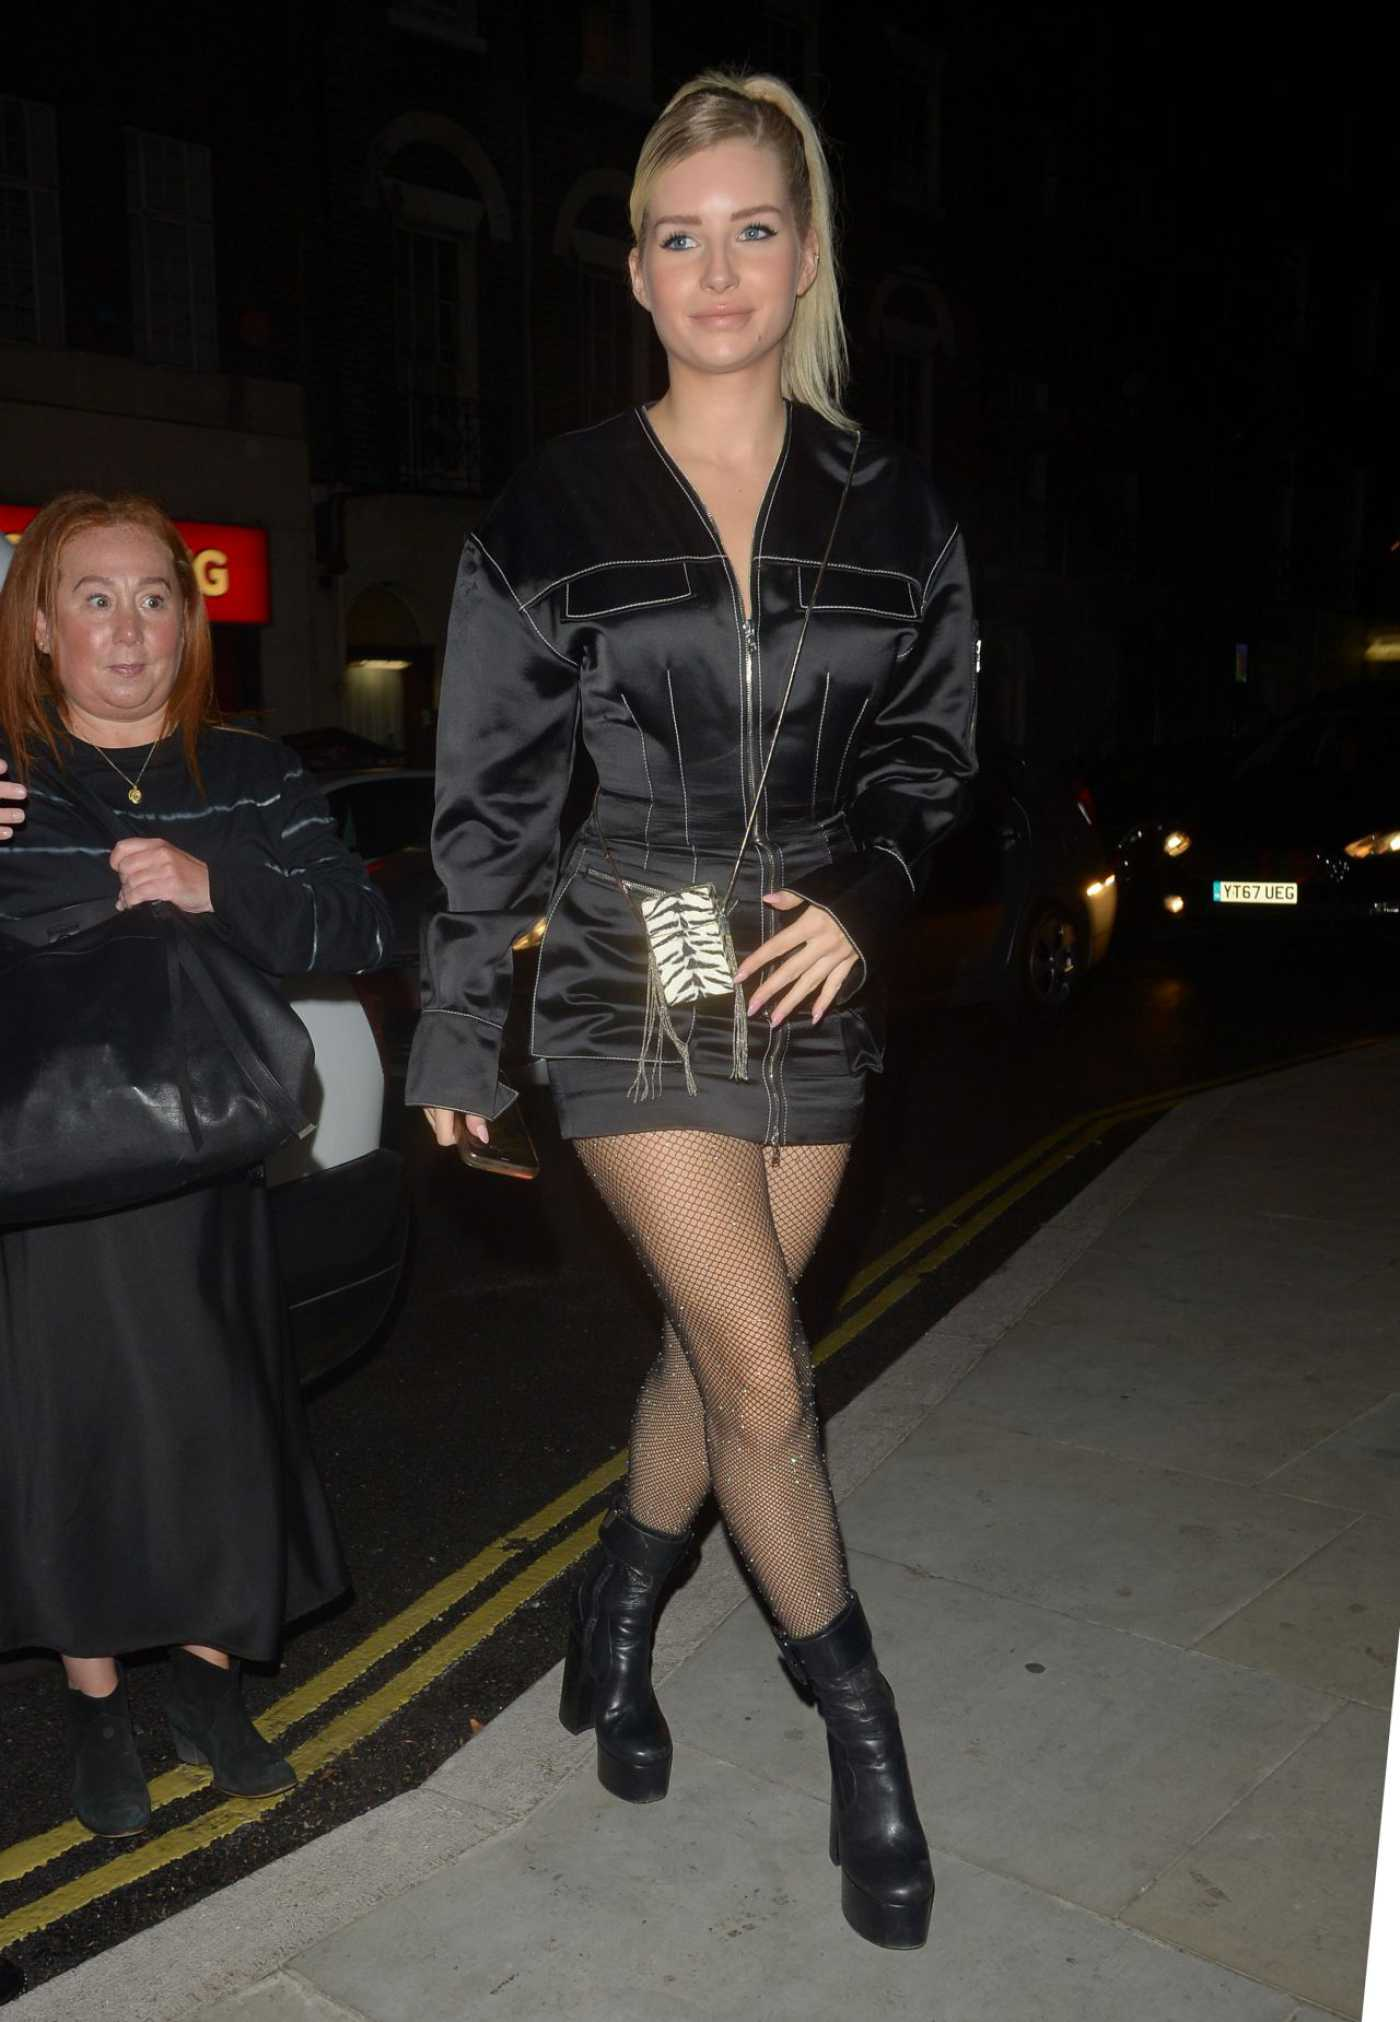 Lottie Moss in a Short Black Dress Arrives at the Love Magazine Party in London 09/16/2019